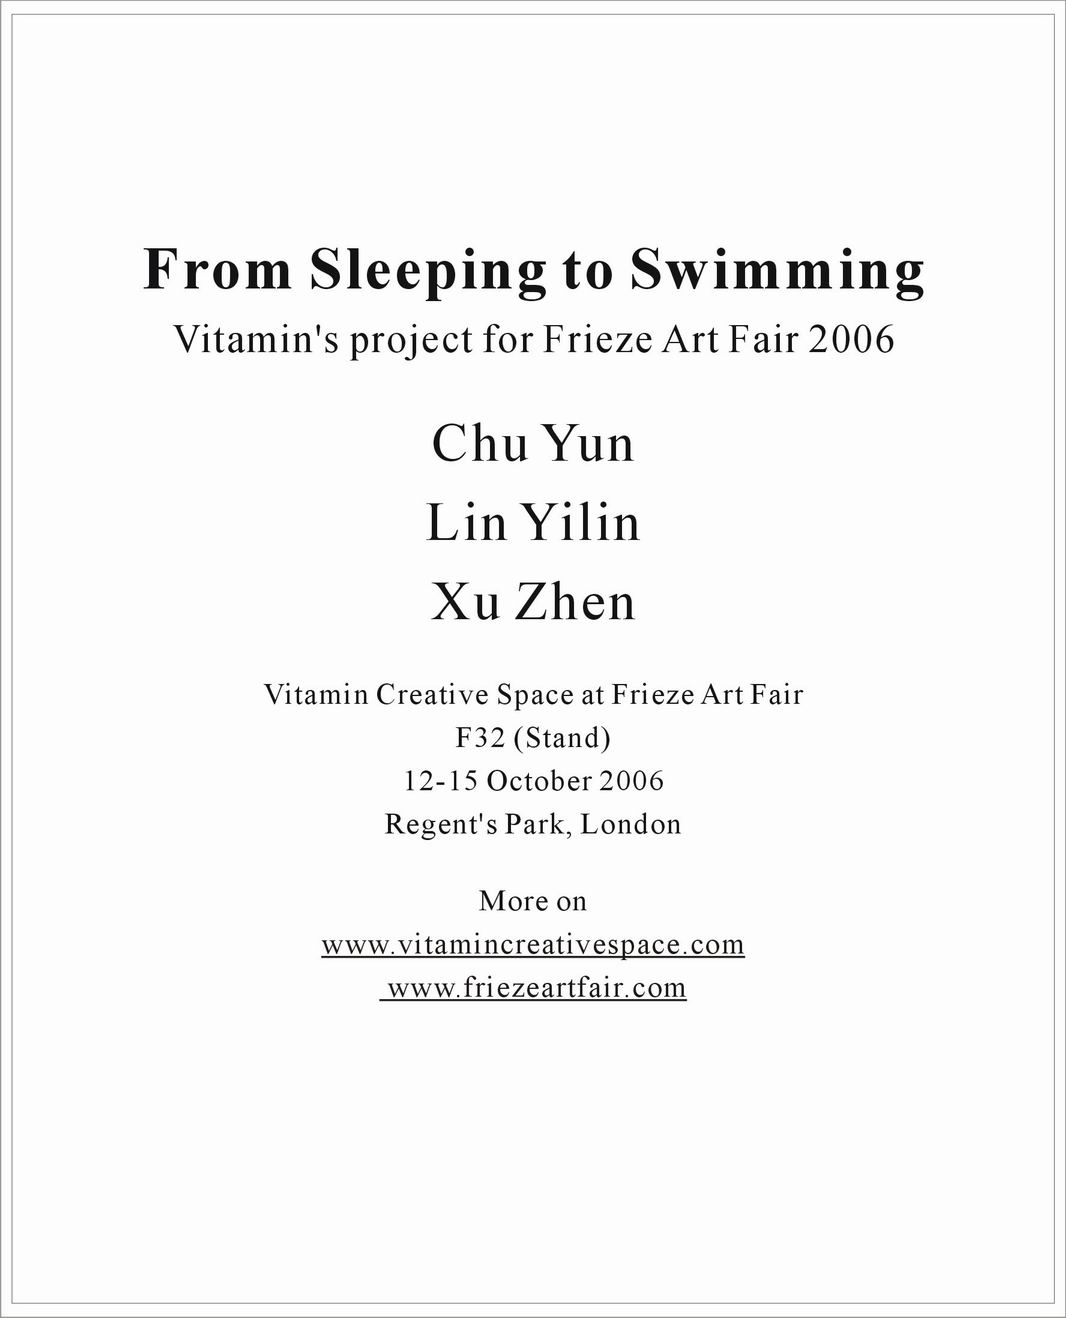 2006 Frieze Art Fair Vitamin Invitation